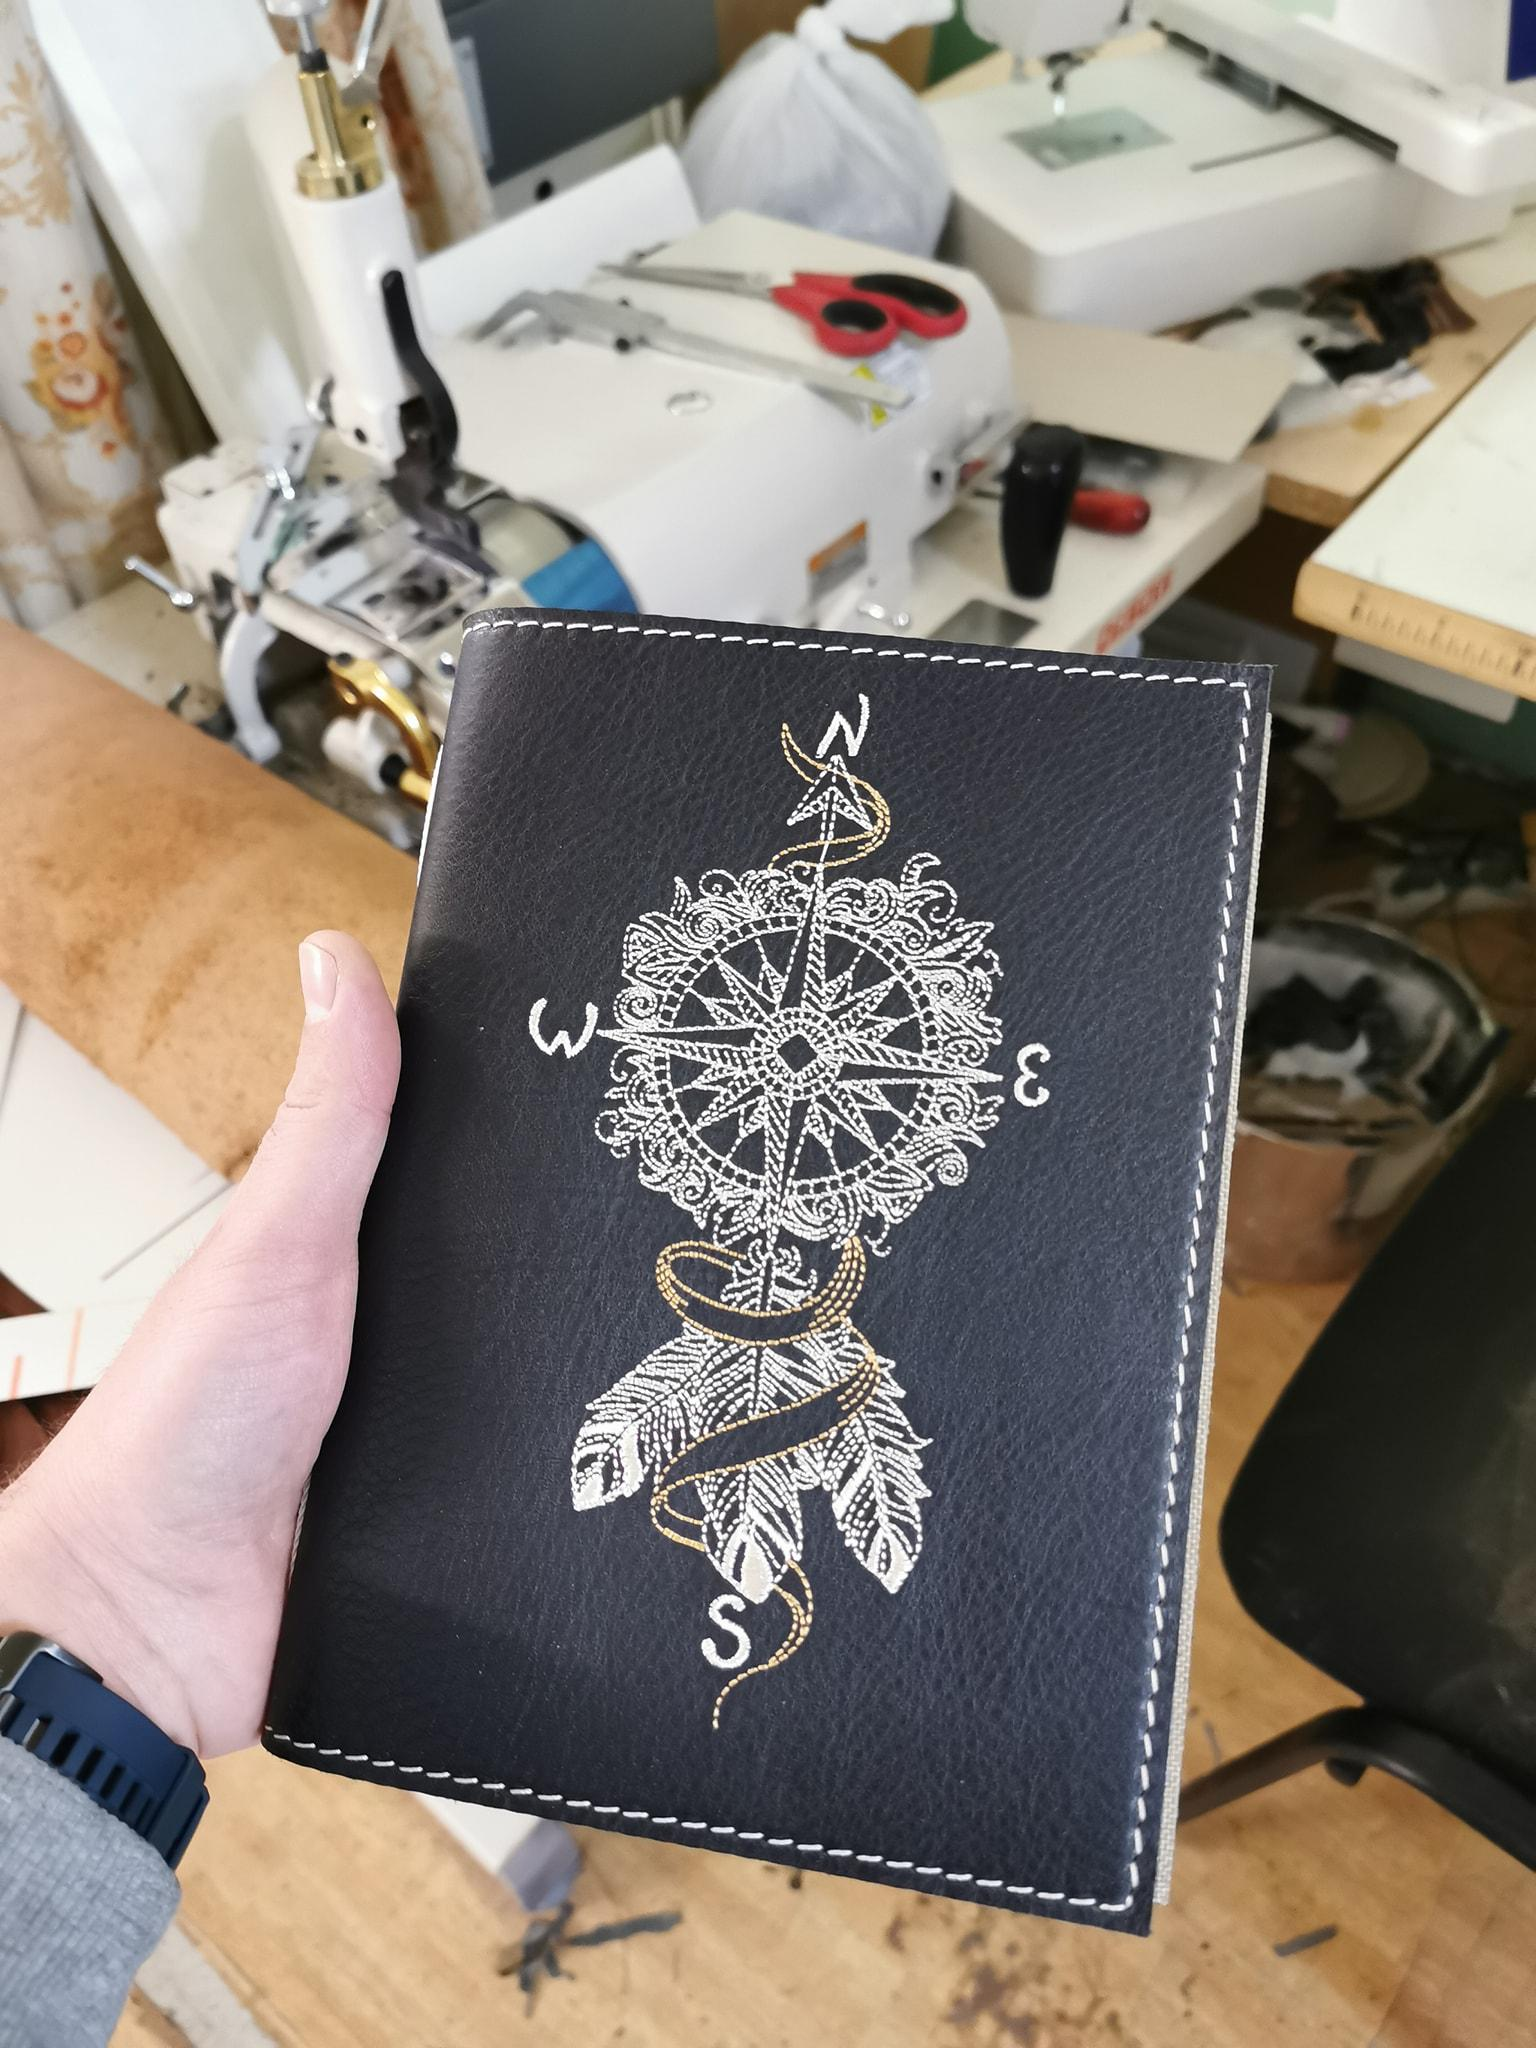 Embroidered cover with Wind rose design